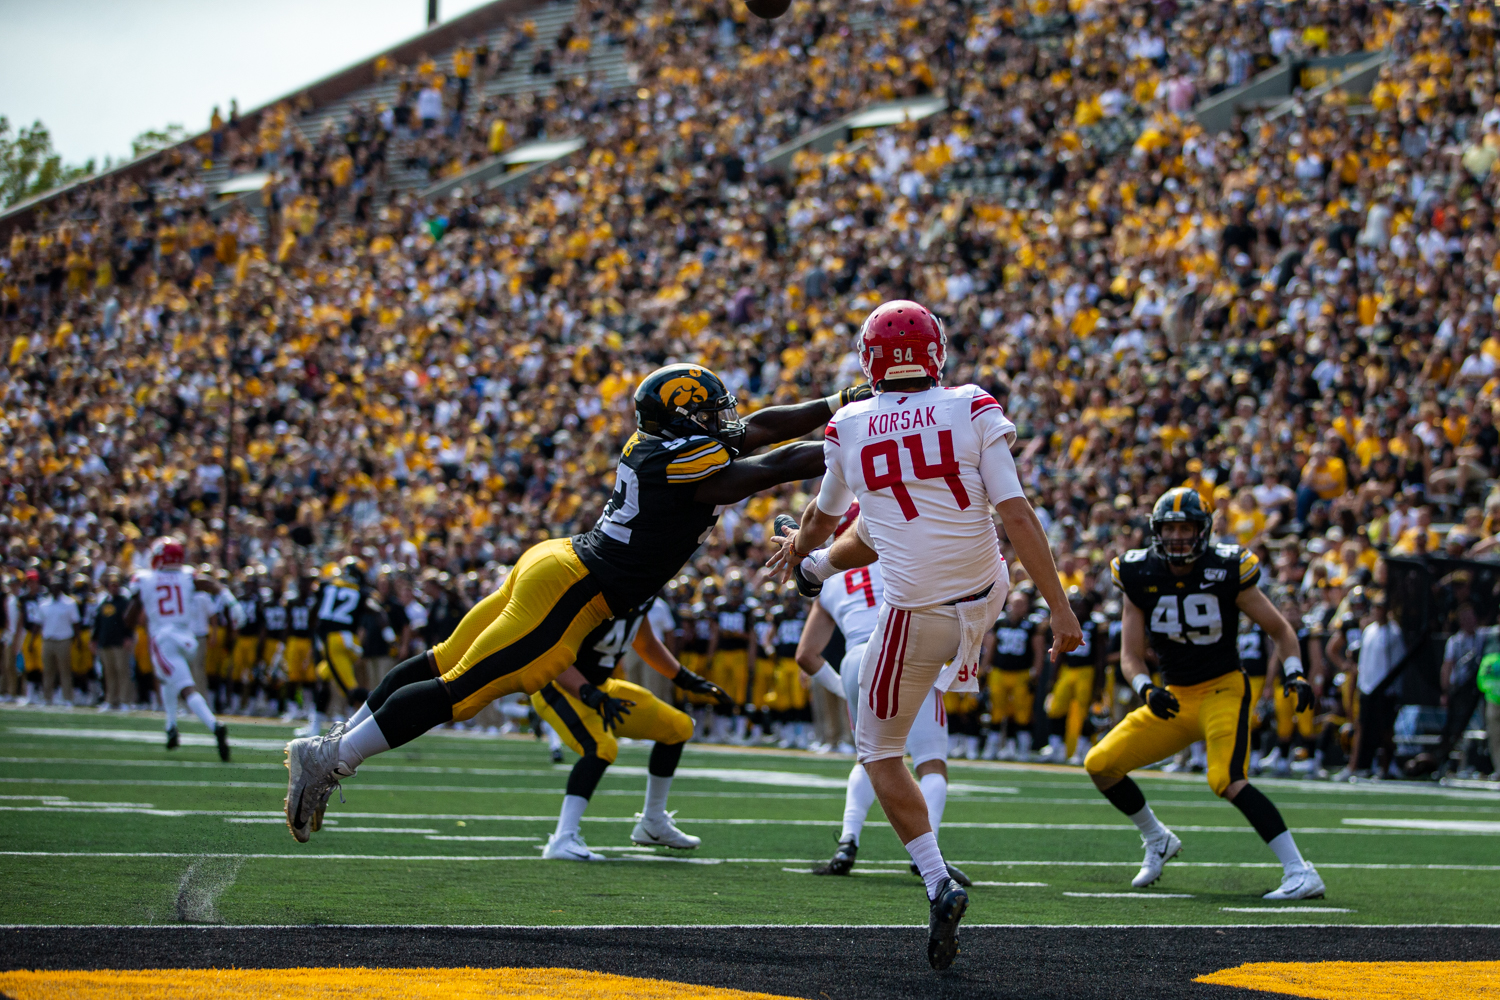 Iowa LB Amani Jones almost blocks a punt during a football game between Iowa and Rutgers at Kinnick Stadium on Saturday, September 7, 2019. The Hawkeyes defeated the Scarlet Knights 30-0.